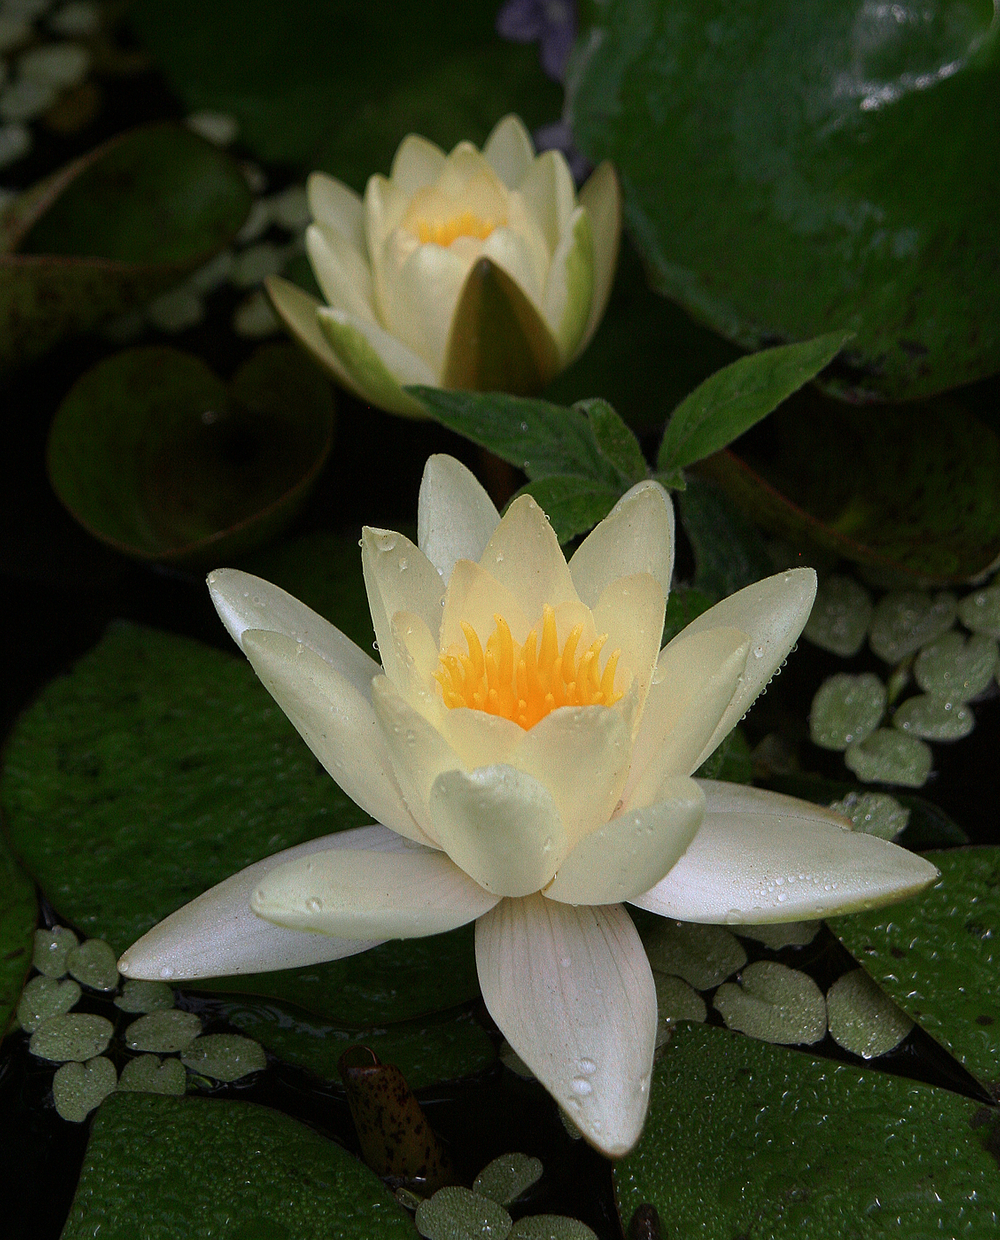 1lillies_large2.jpg